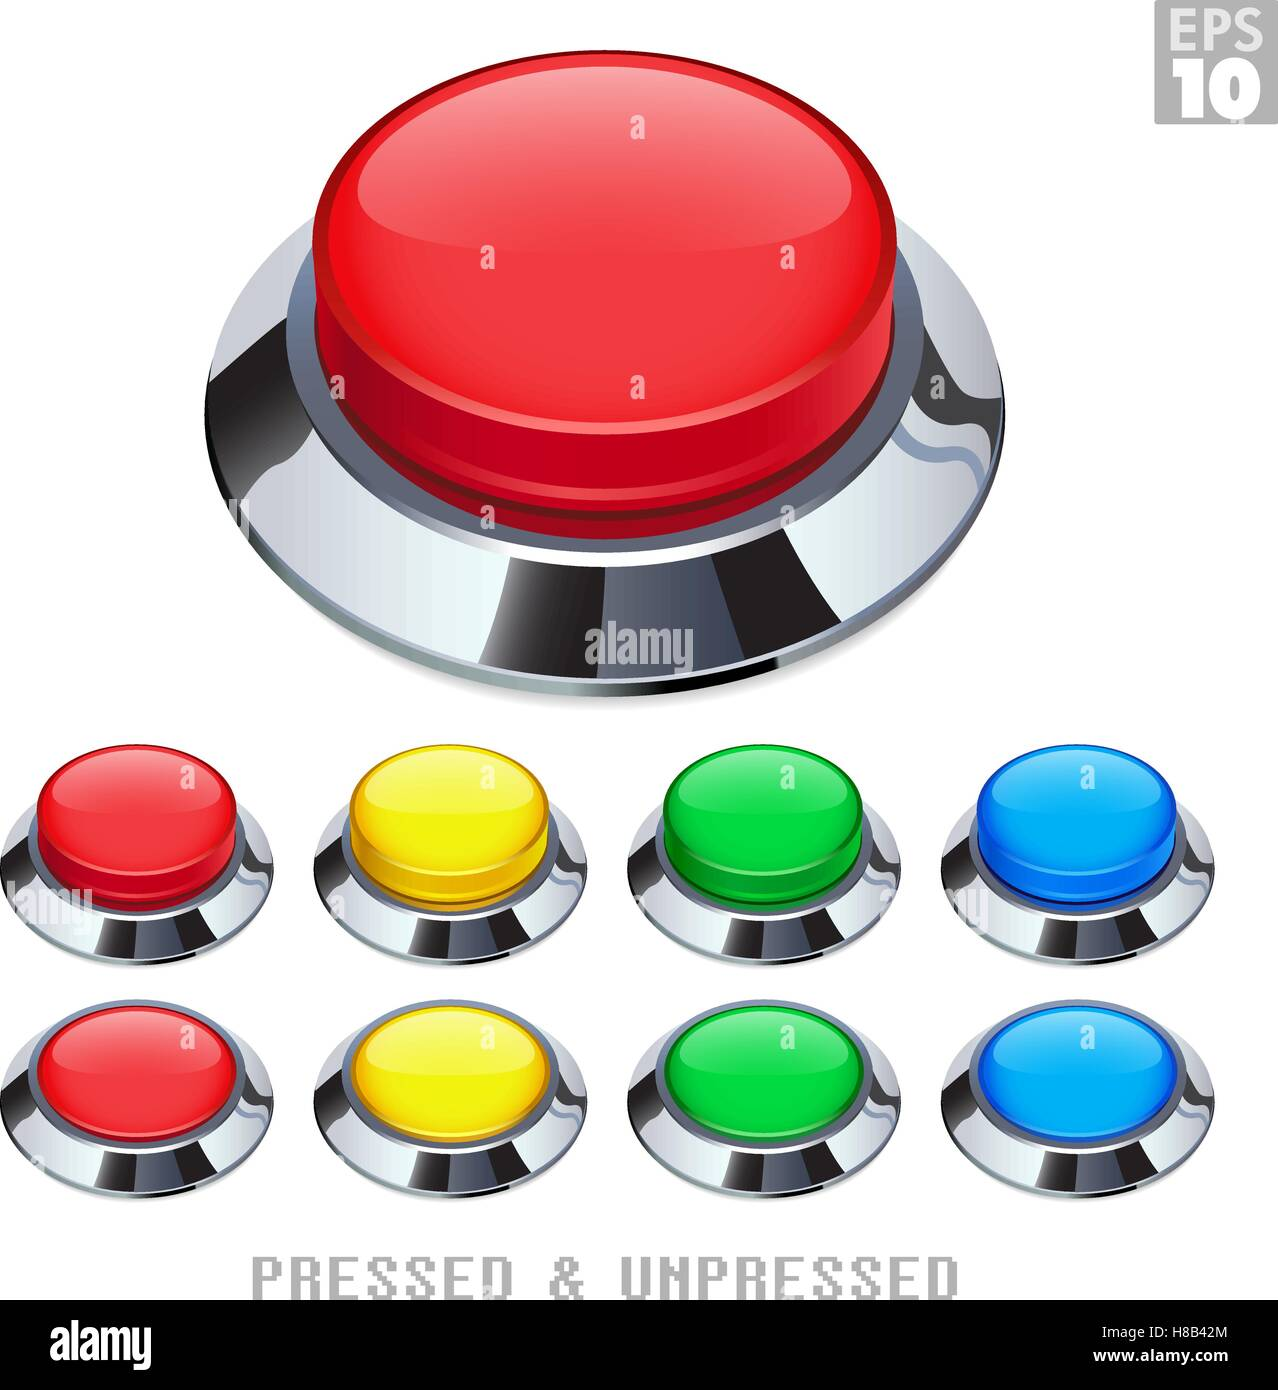 Arcade Push Buttons With Chrome Bezel Pressed and Unpressed Various Colors - Stock Vector